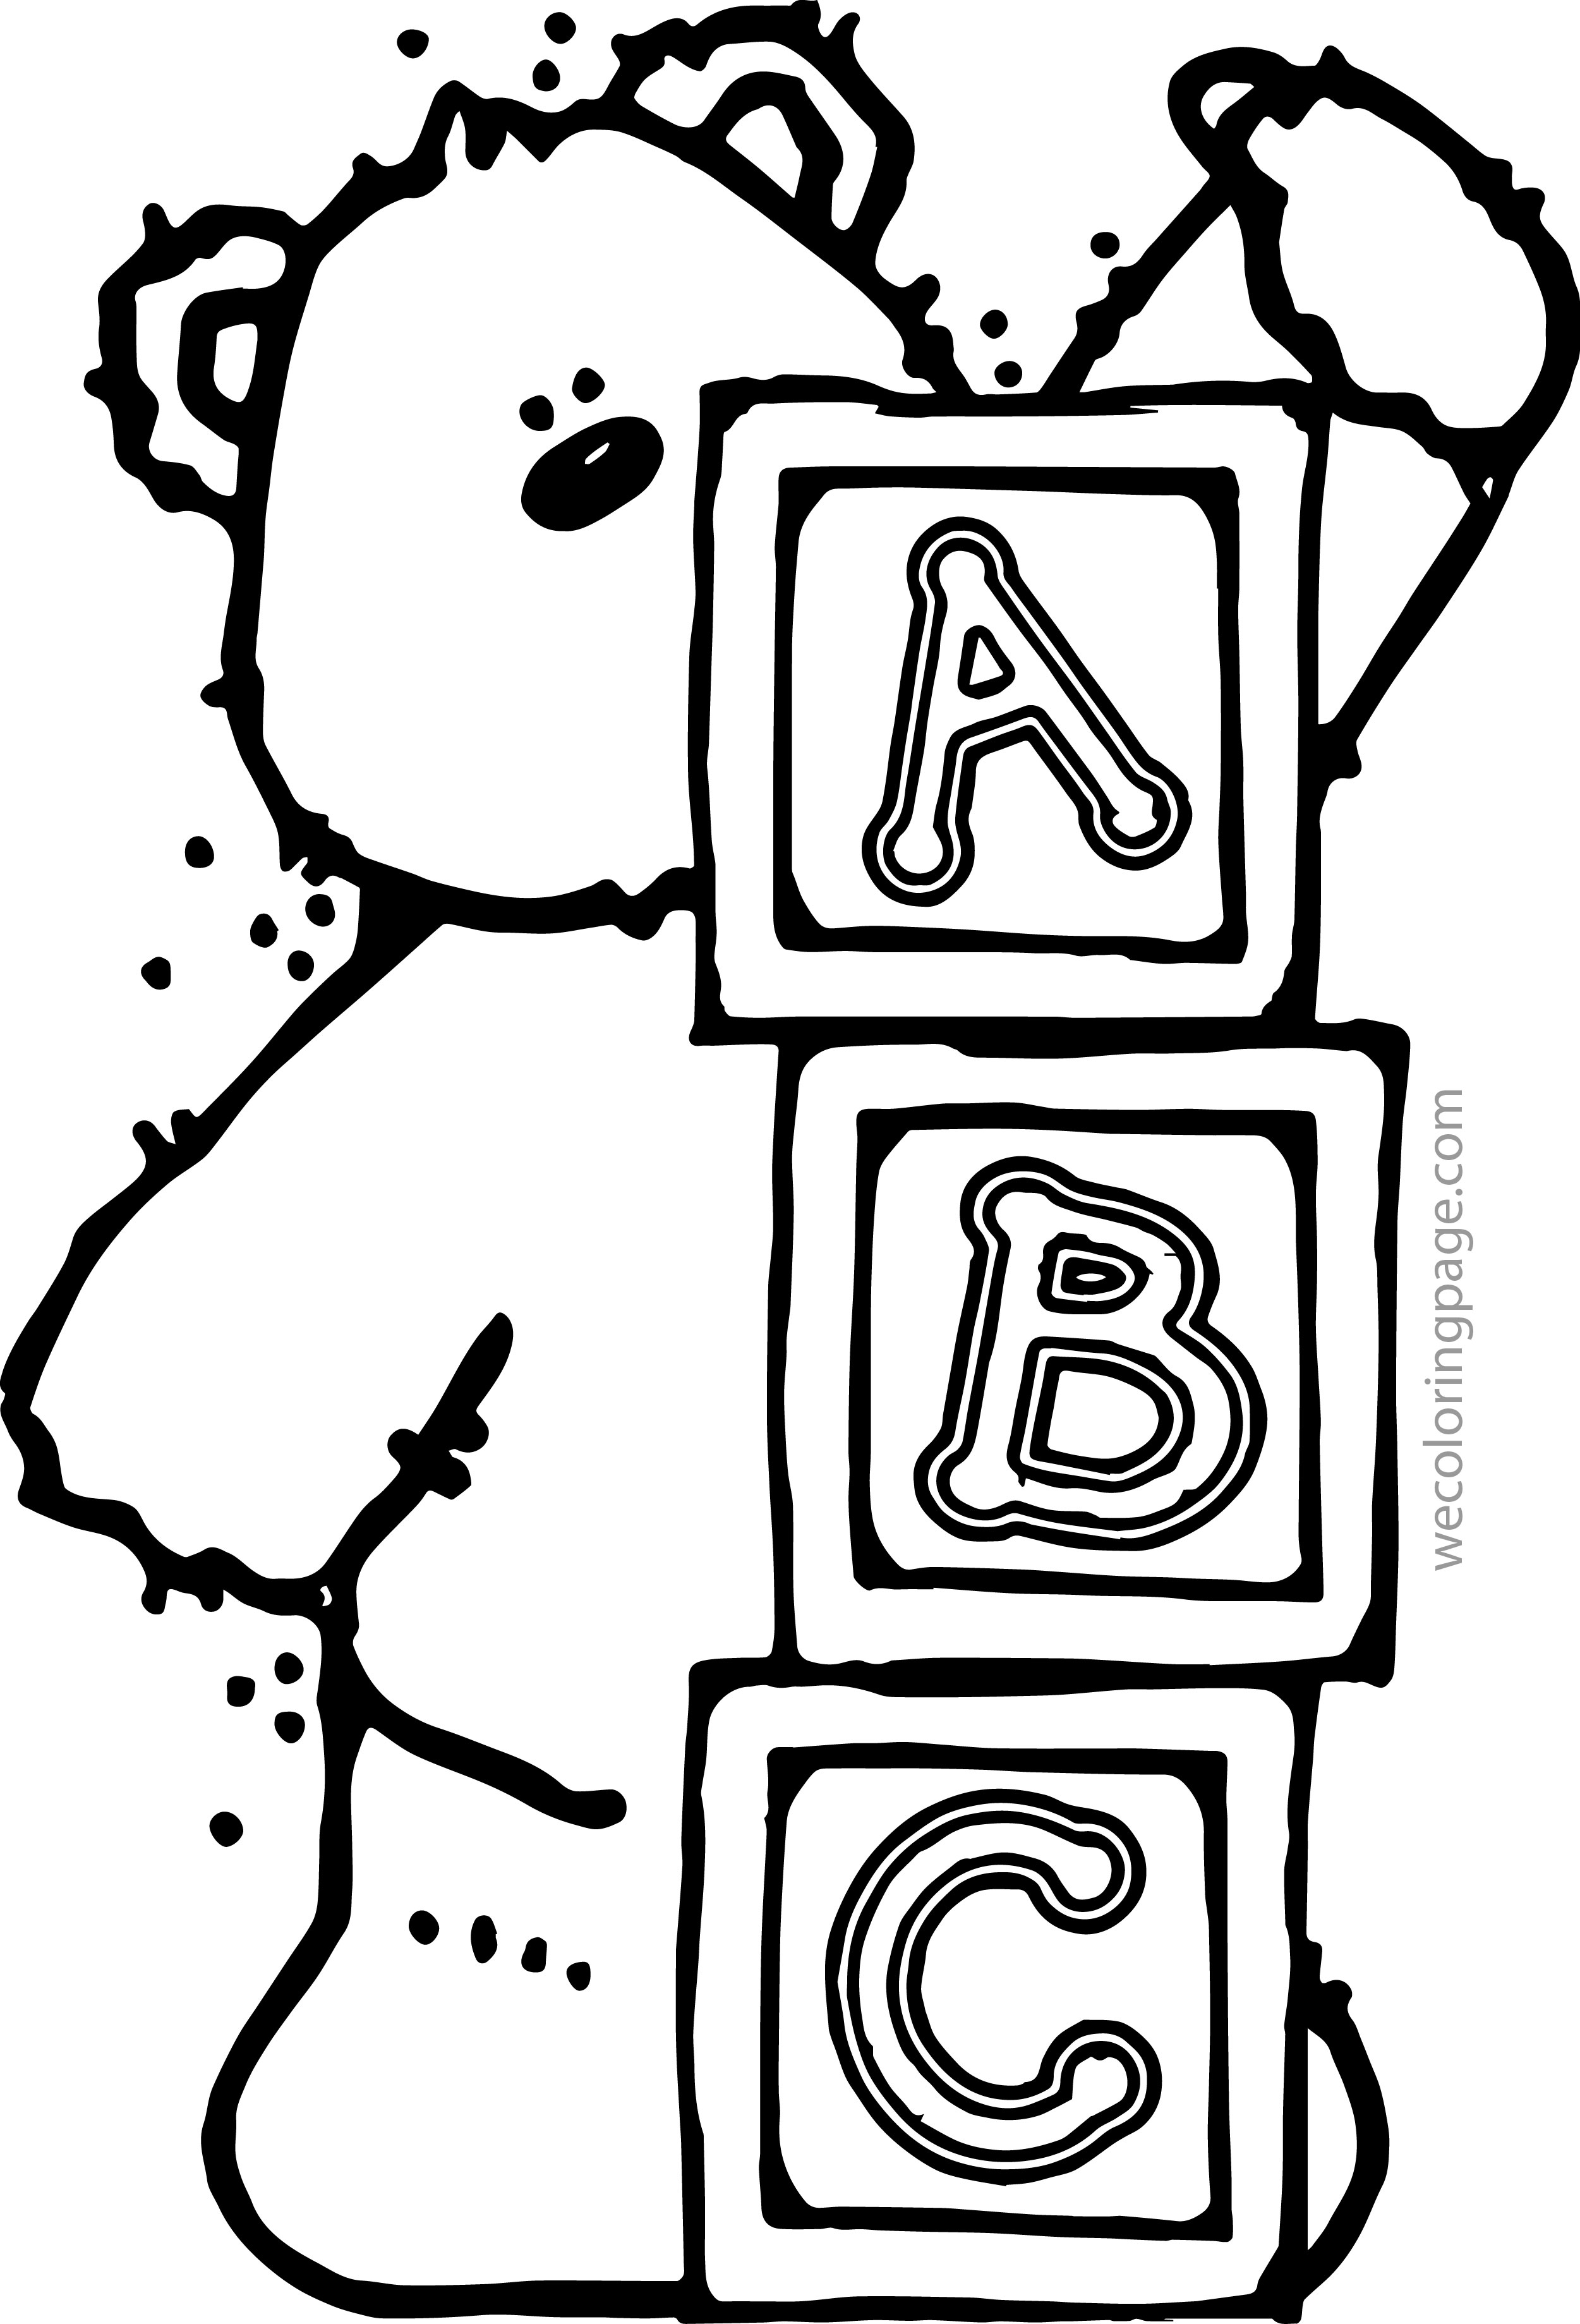 2501x3678 Abc Coloring Pages Free Printable Abc For Kids